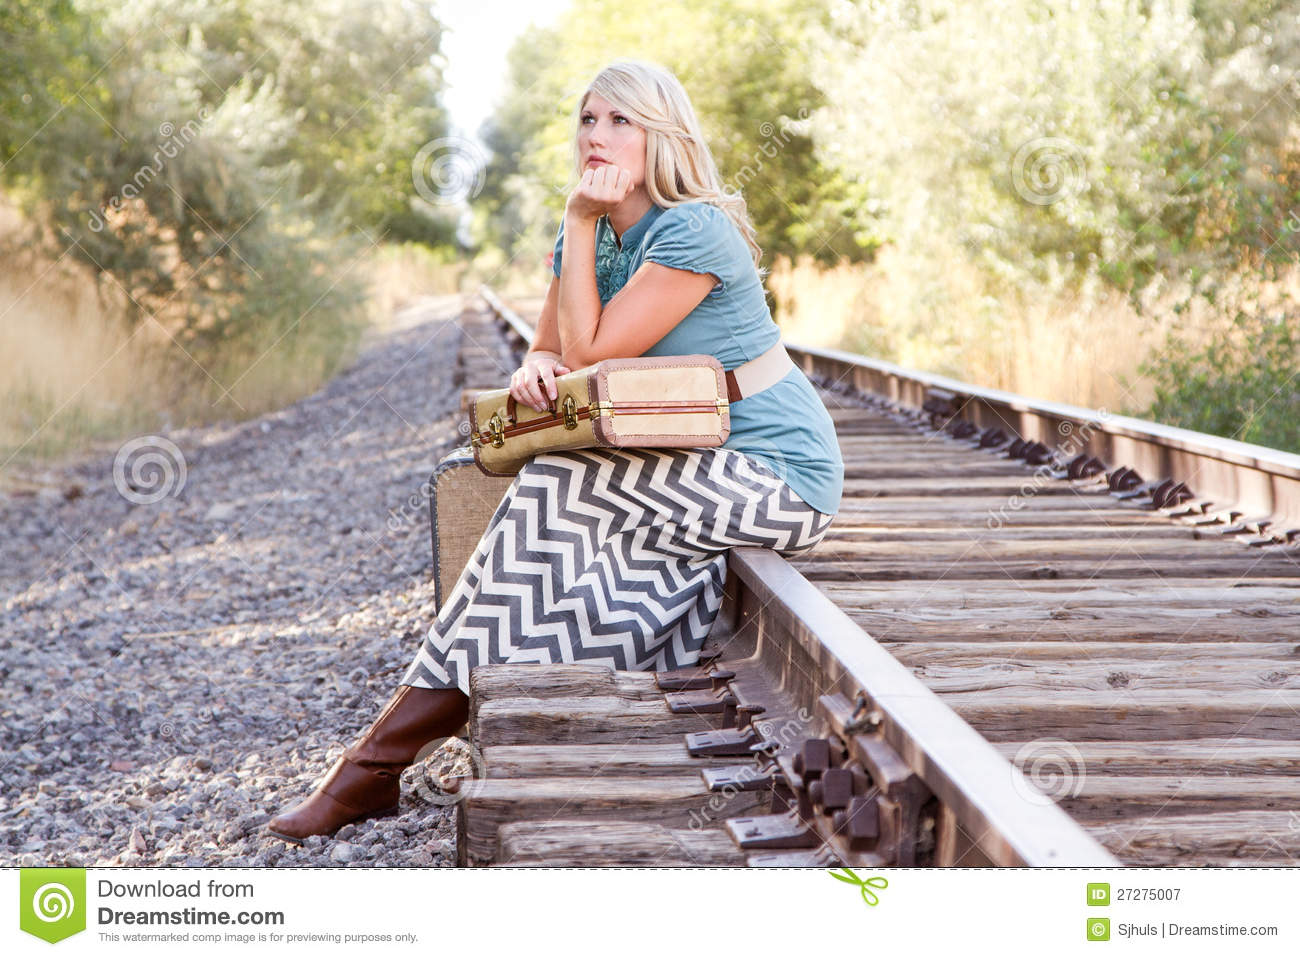 ... Free Stock Photography: Woman with vintage luggage on railroad tracks